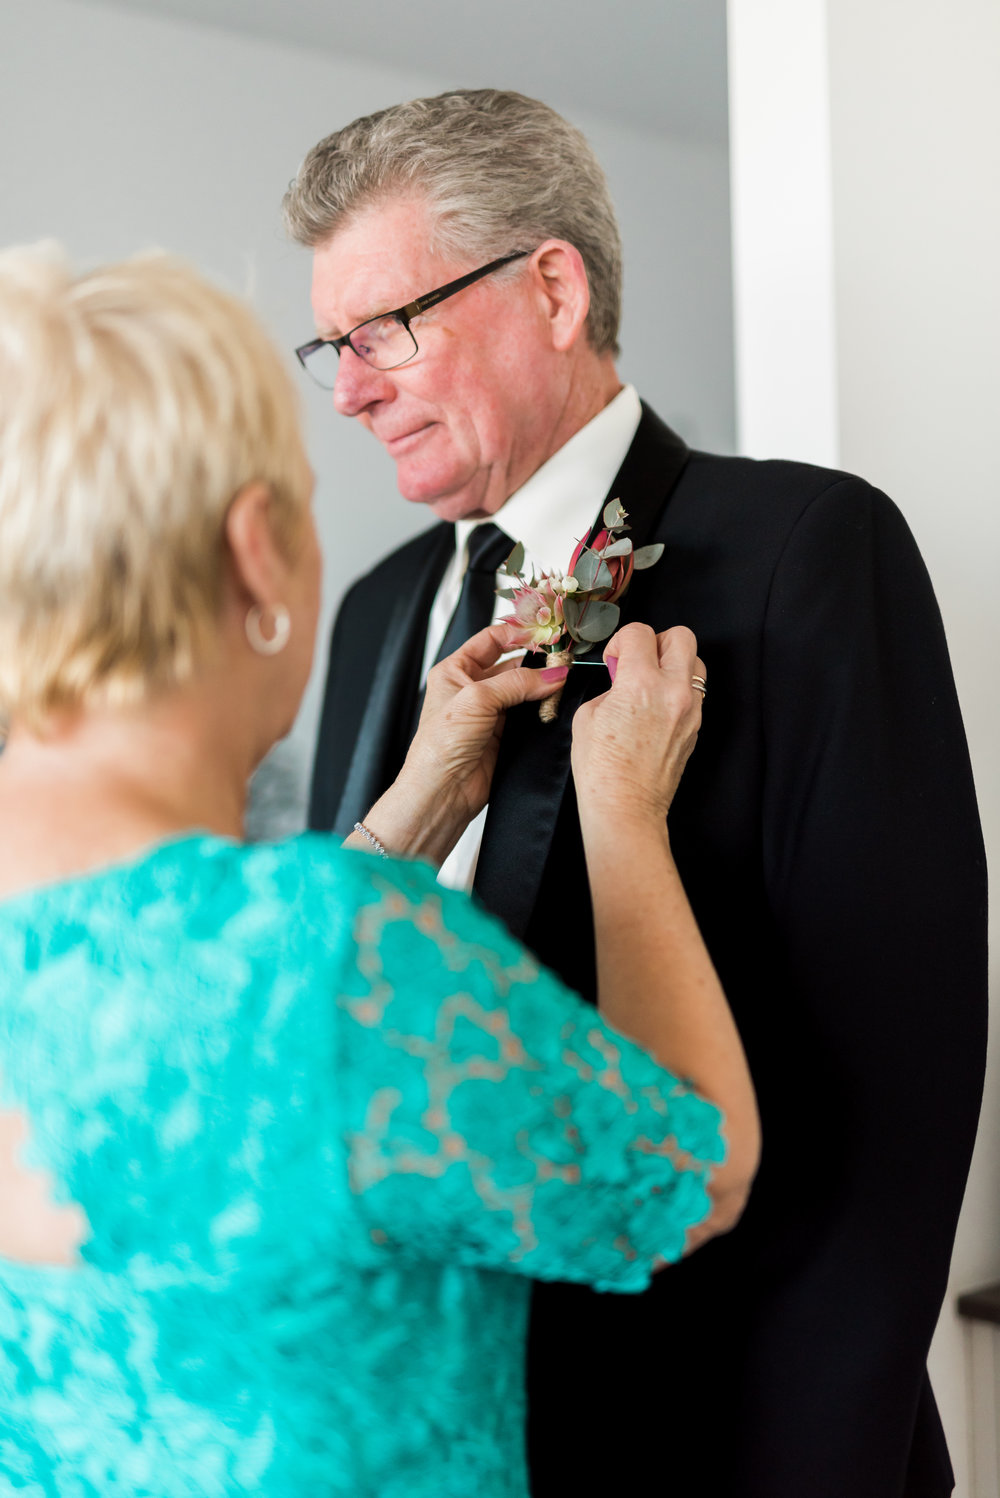 Amazing Wedding Suit Hire Wigan Picture Collection - All Wedding ...